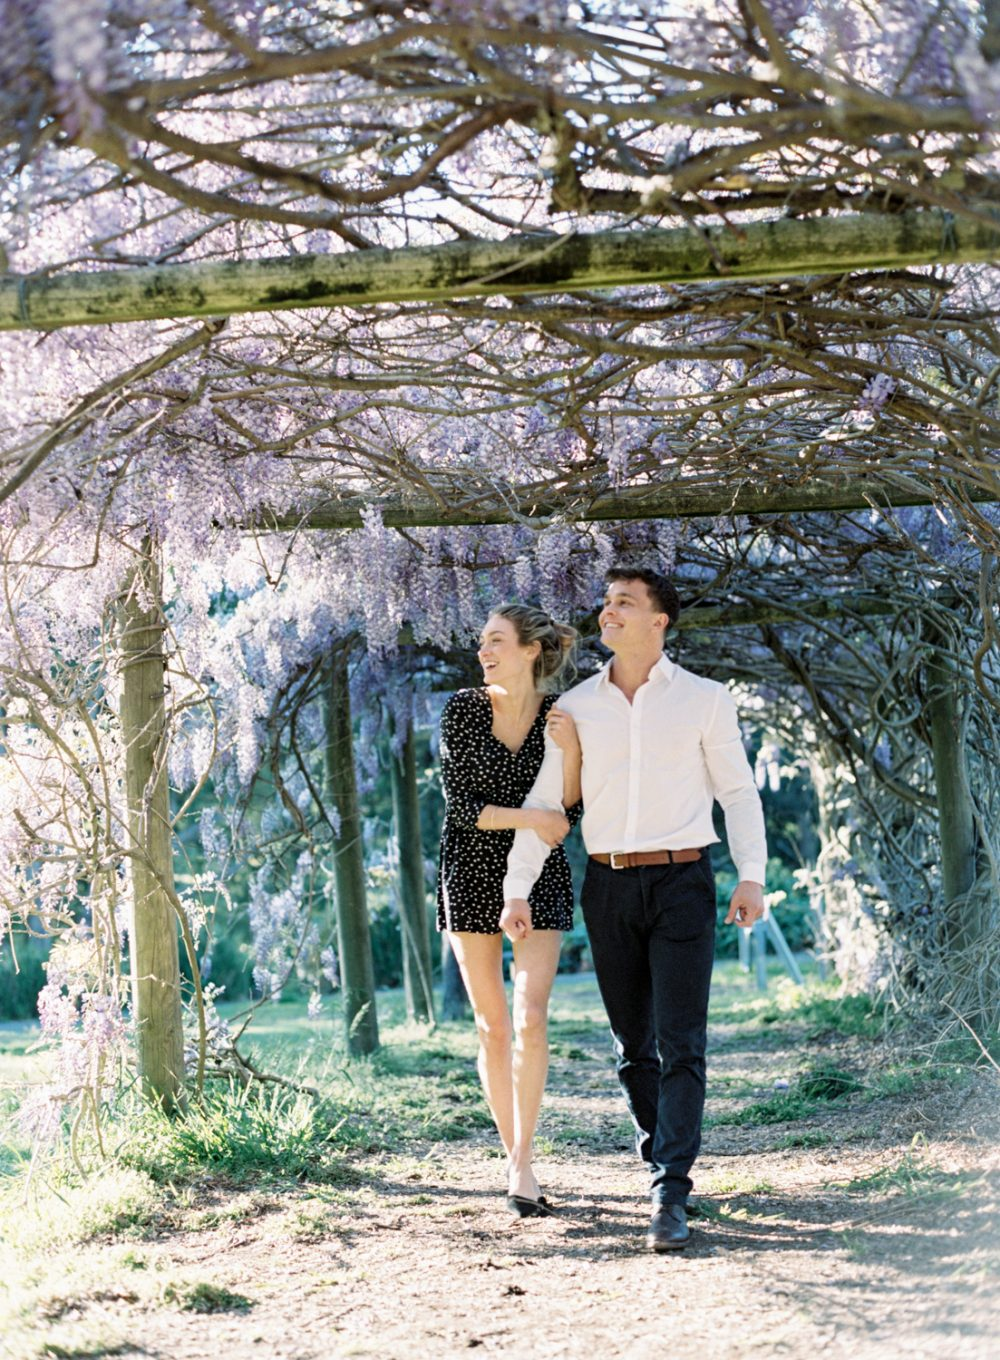 we are Sydney fine art film wedding photographer and we shott this beautiful engagement session in local park with Spring blossom as a backdrop.